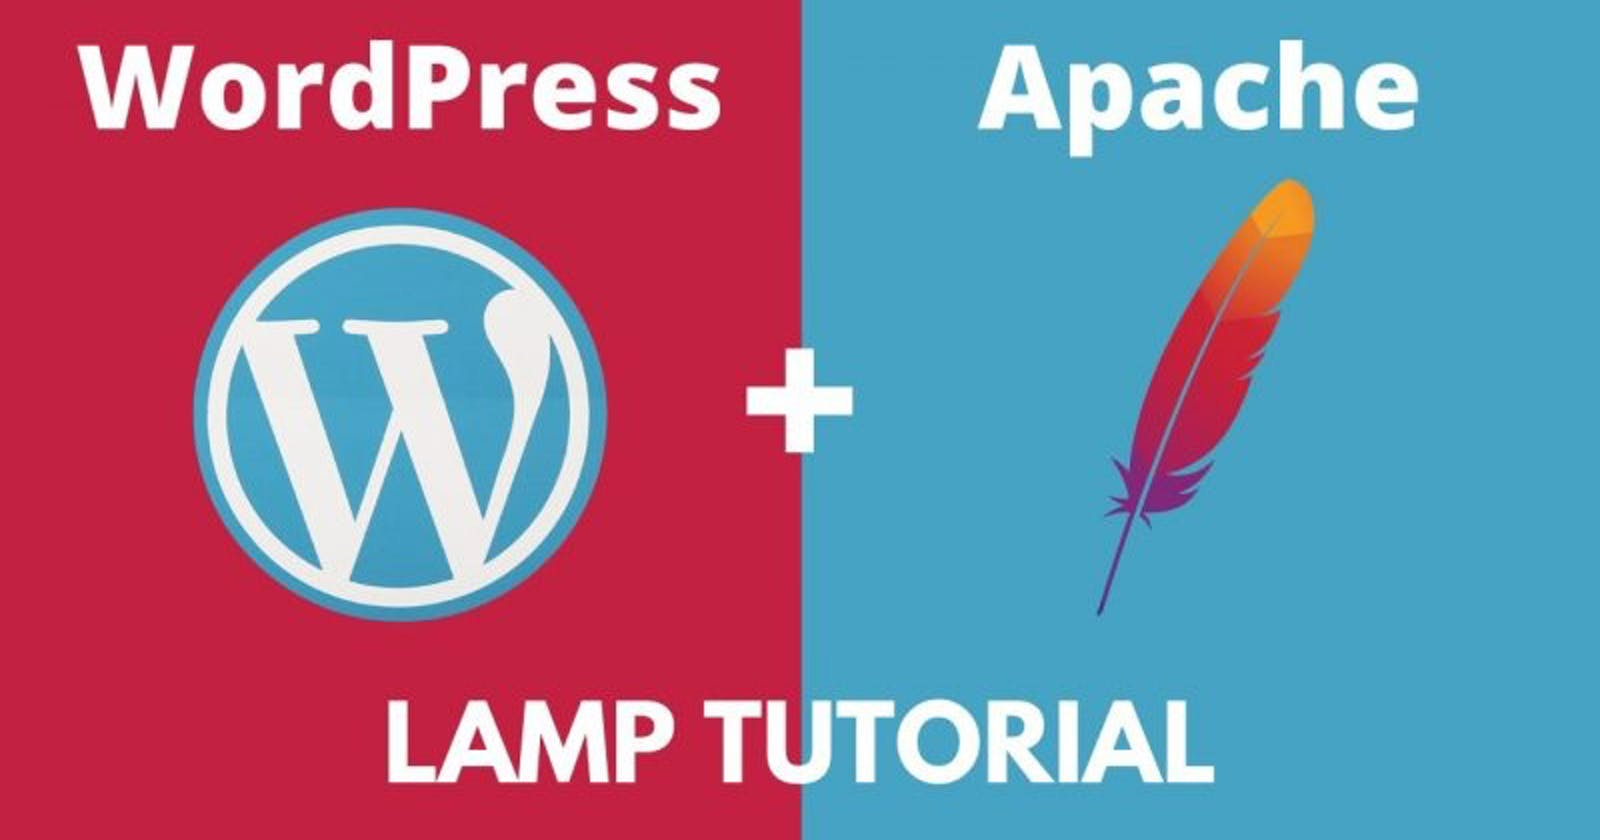 Install LAMP Server and configure Wordpress site on it